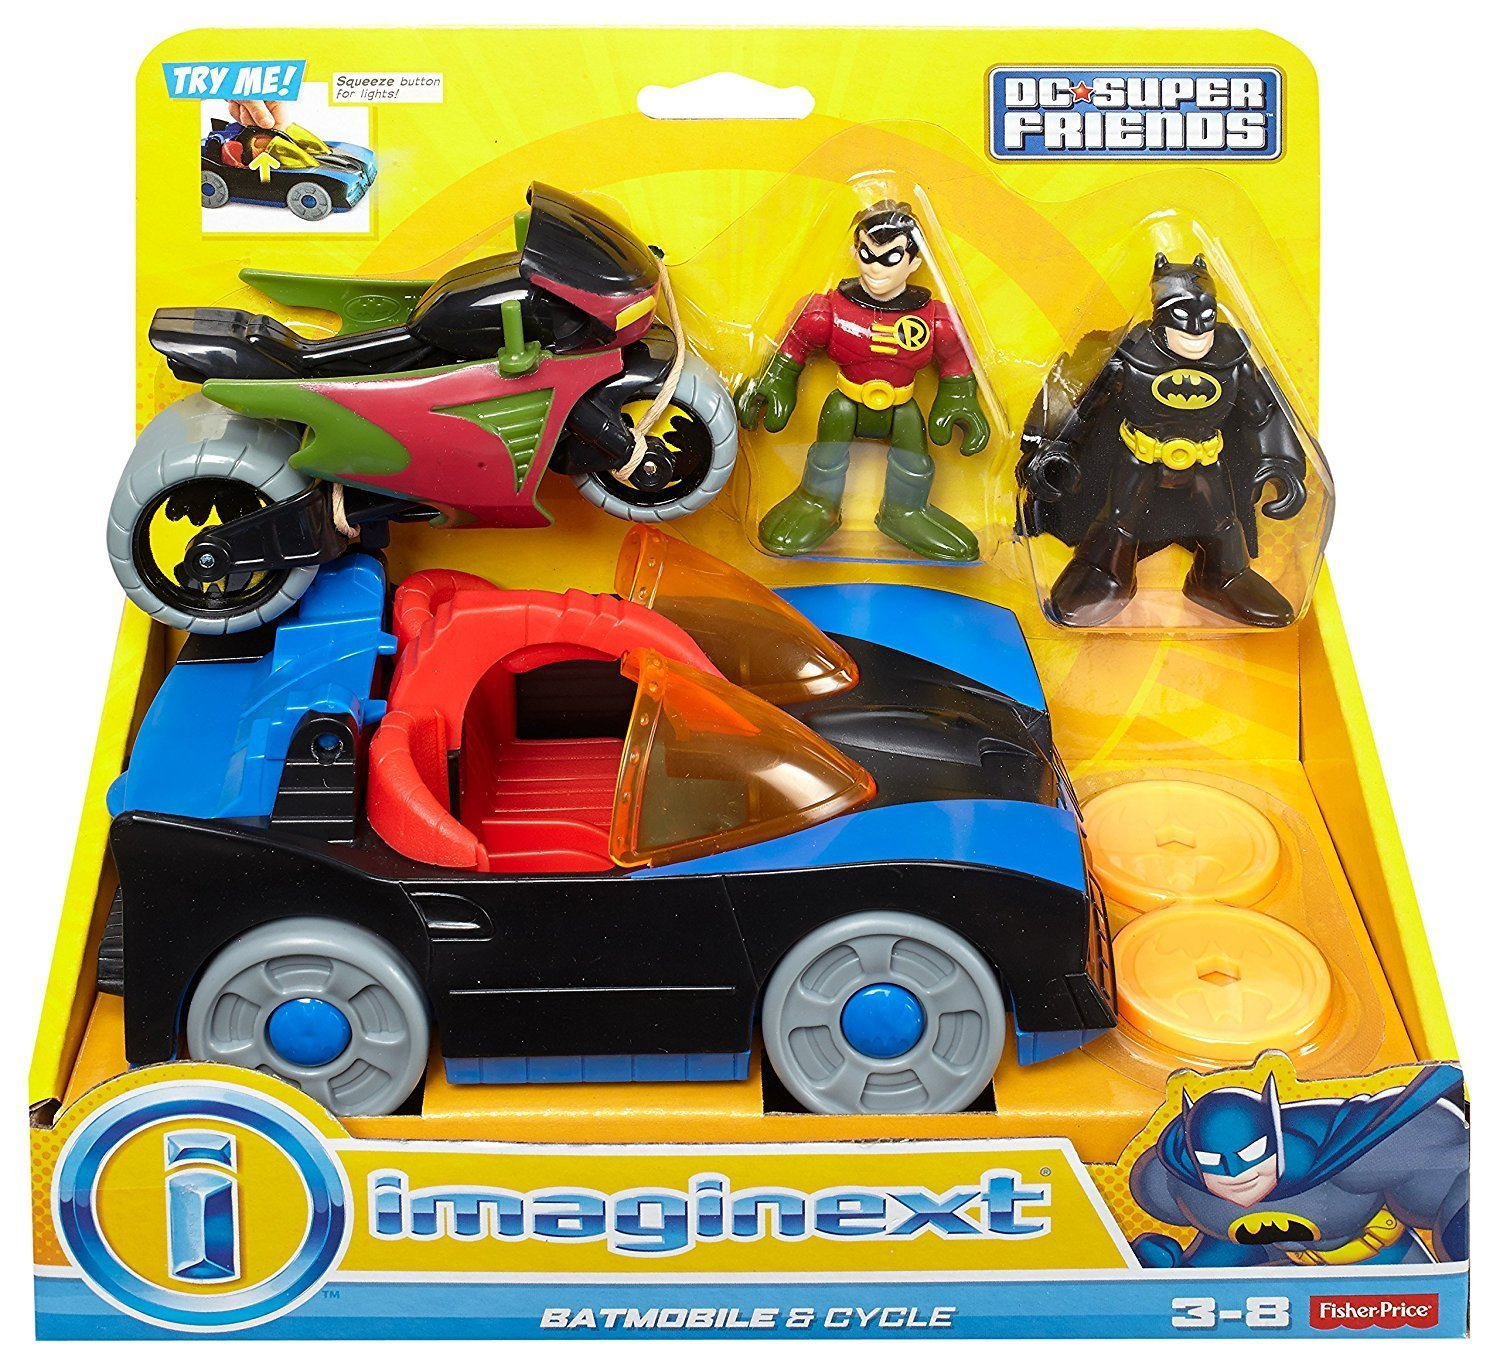 Fisher-Price Imaginext DC Super Friends Batmobile & Cycle by Fisher-Price